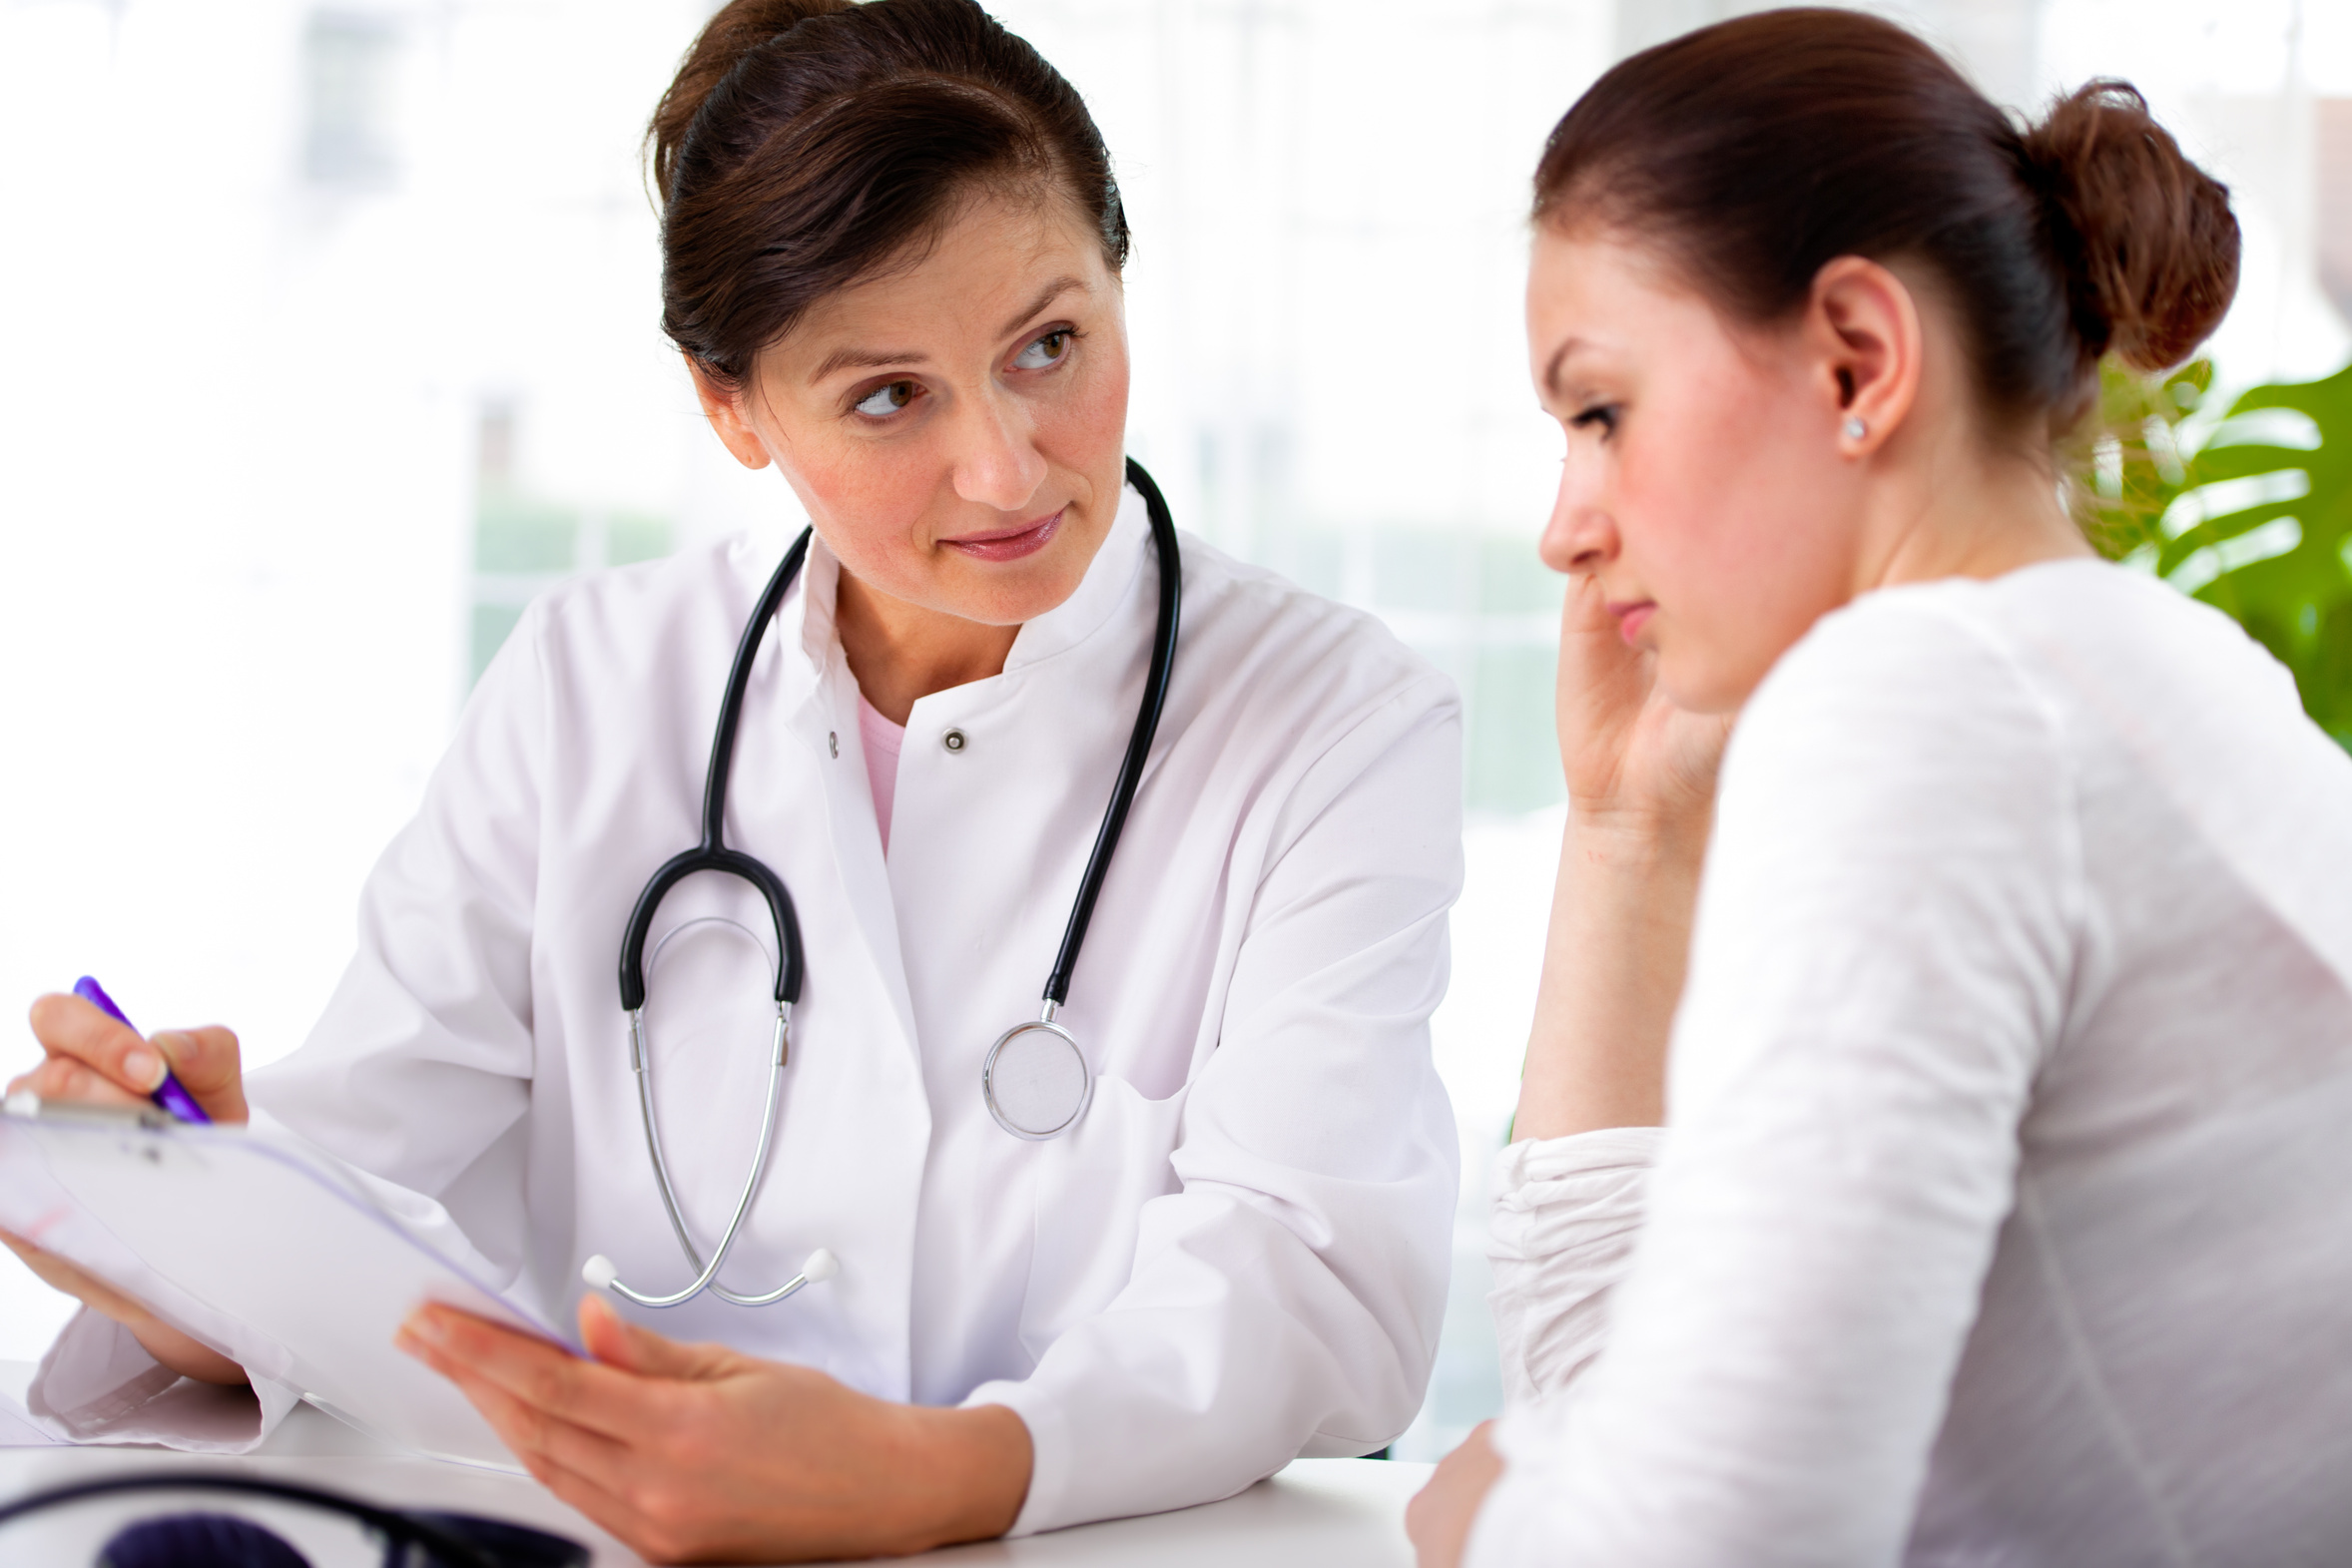 treatment of women in early complex Thousands of women from 15 to 44 experience premature early menopause every year and experience the dramatic effect of sudden estrogen crash learn about treatment for early menopause.